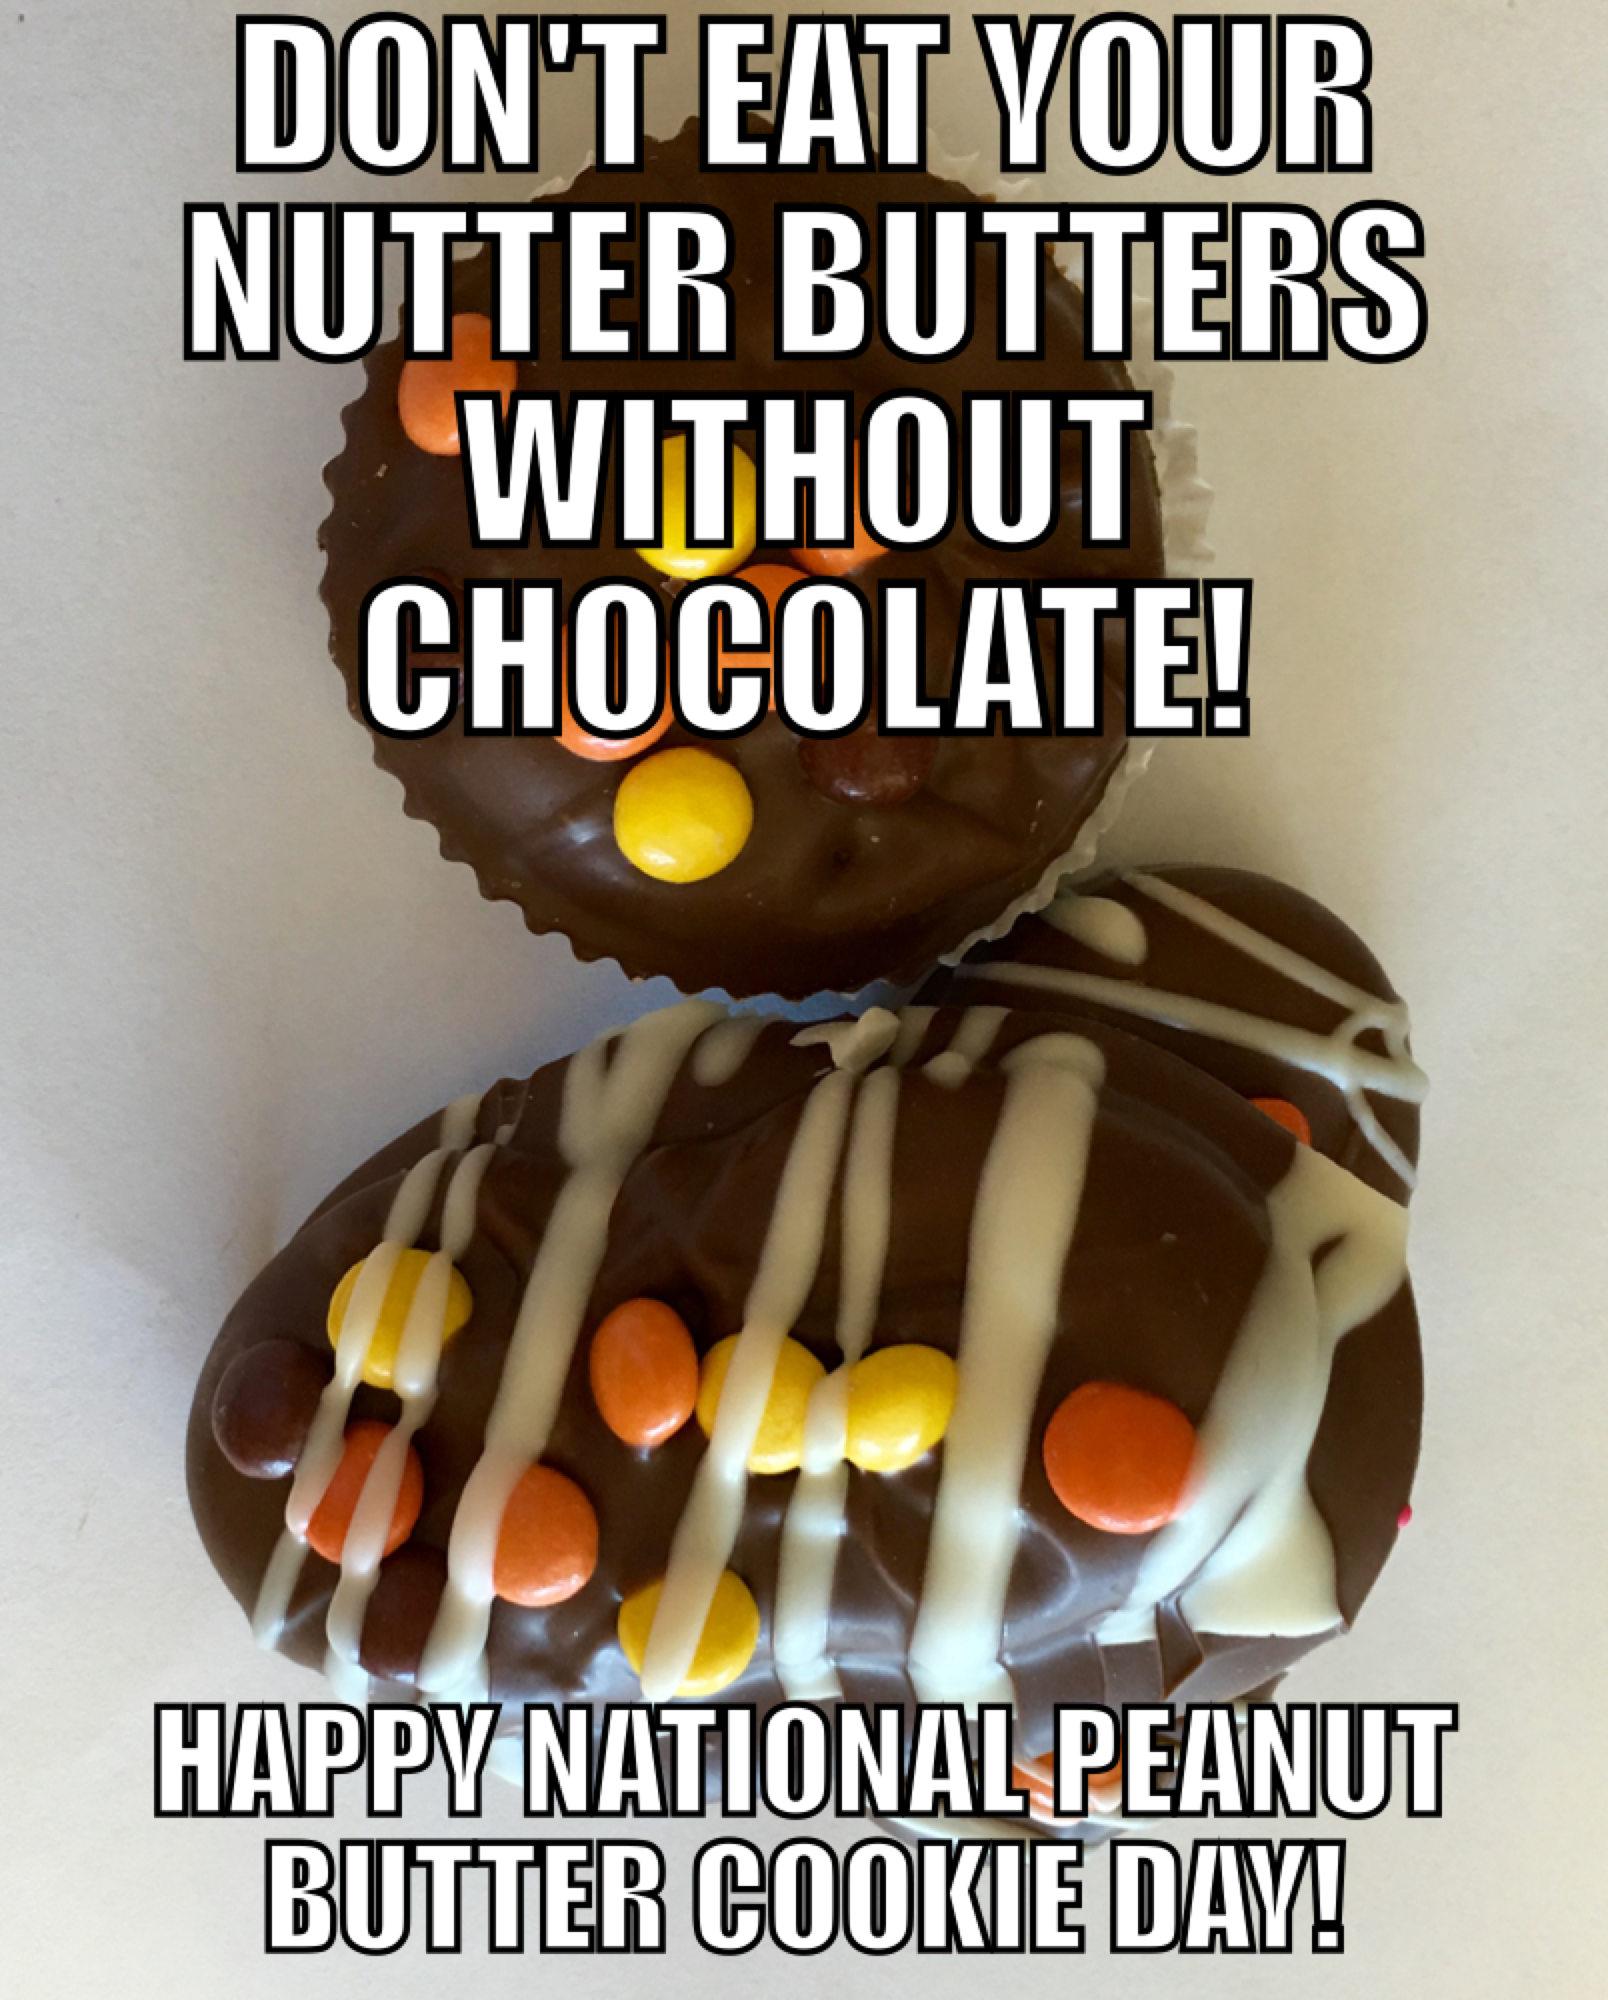 Today Is National Peanut Butter Cookie Day Suzissweetshoppe Chocolatecoverednutterbutters Peanutbuttercookieday Choc Food Peanut Butter Homemade Chocolate